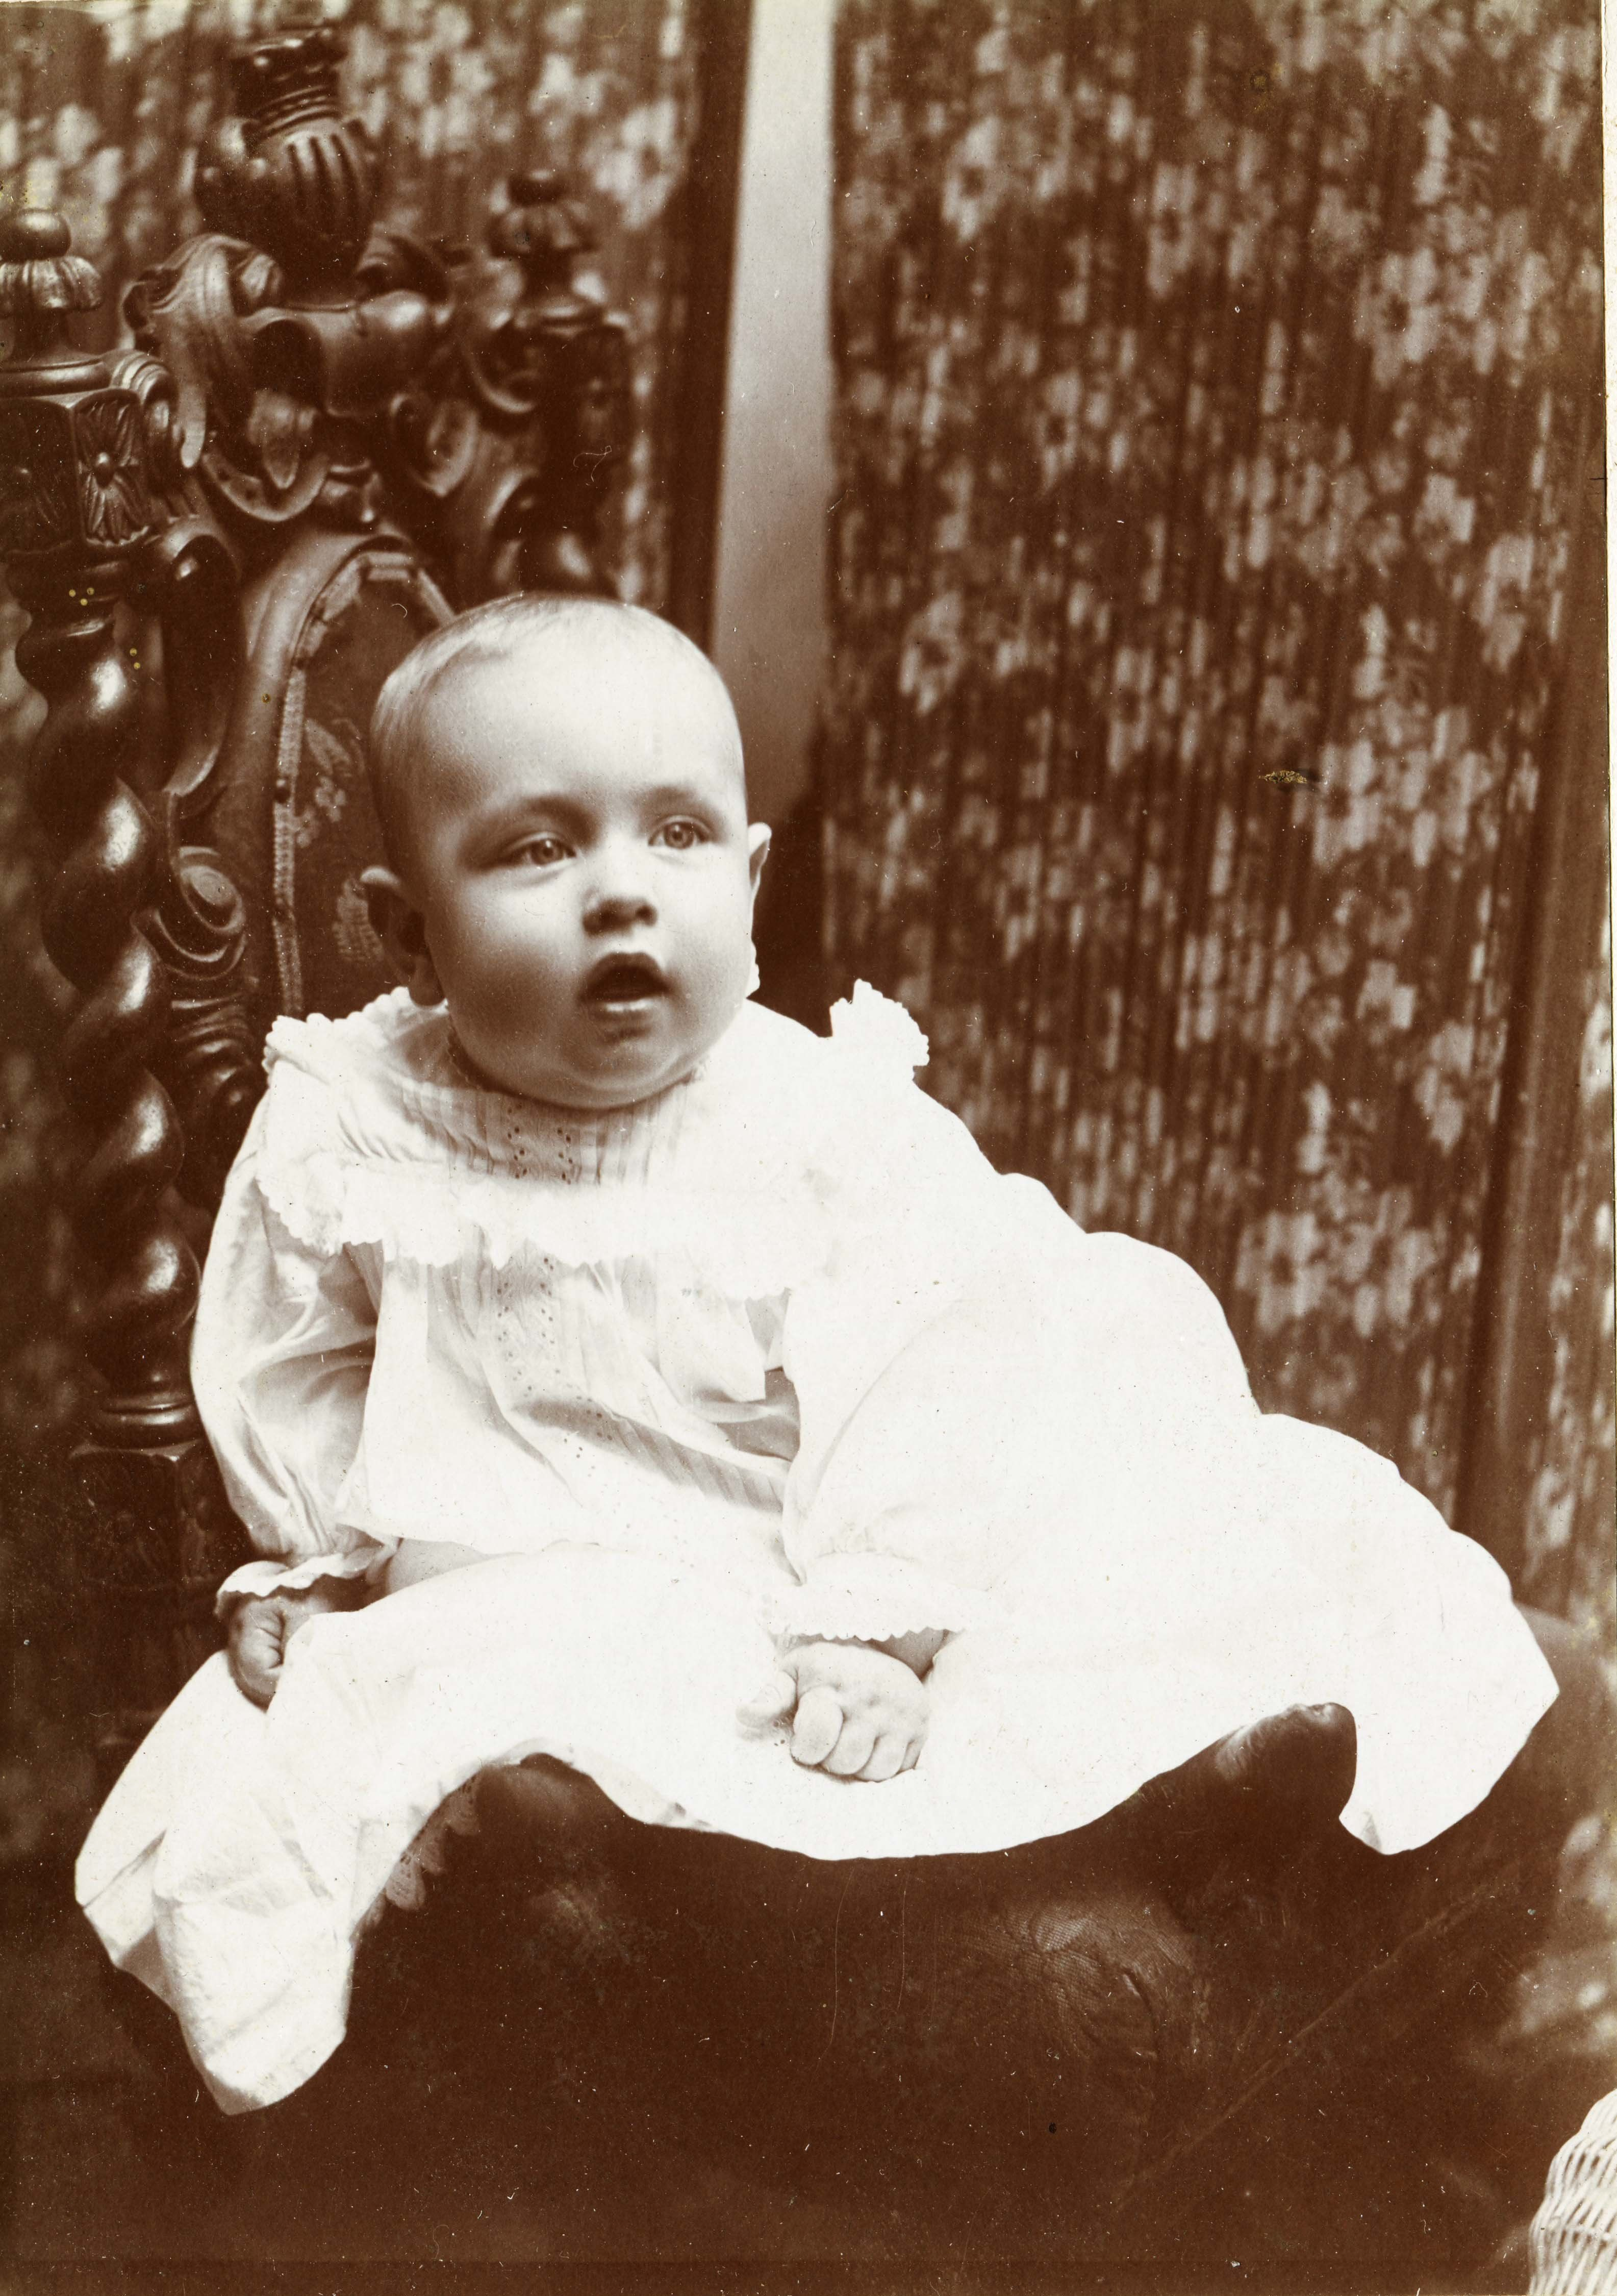 A very cute baby stares with interest at the camera, circa 1880. (Photo by Transcendental Graphics/Getty Images)